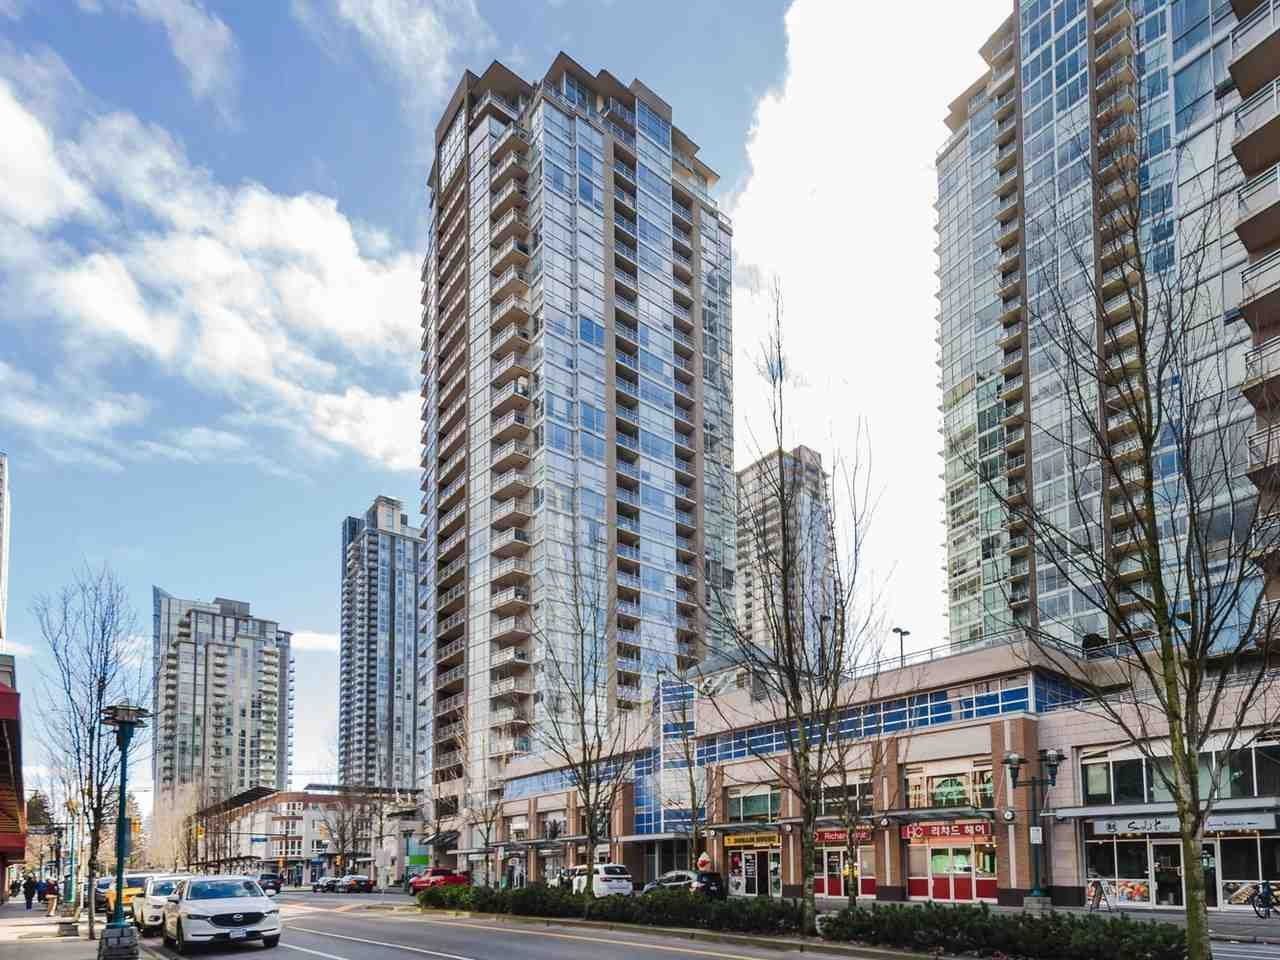 """Main Photo: 706 2978 GLEN Drive in Coquitlam: North Coquitlam Condo for sale in """"GRAND CENTRAL ONE"""" : MLS®# R2540204"""